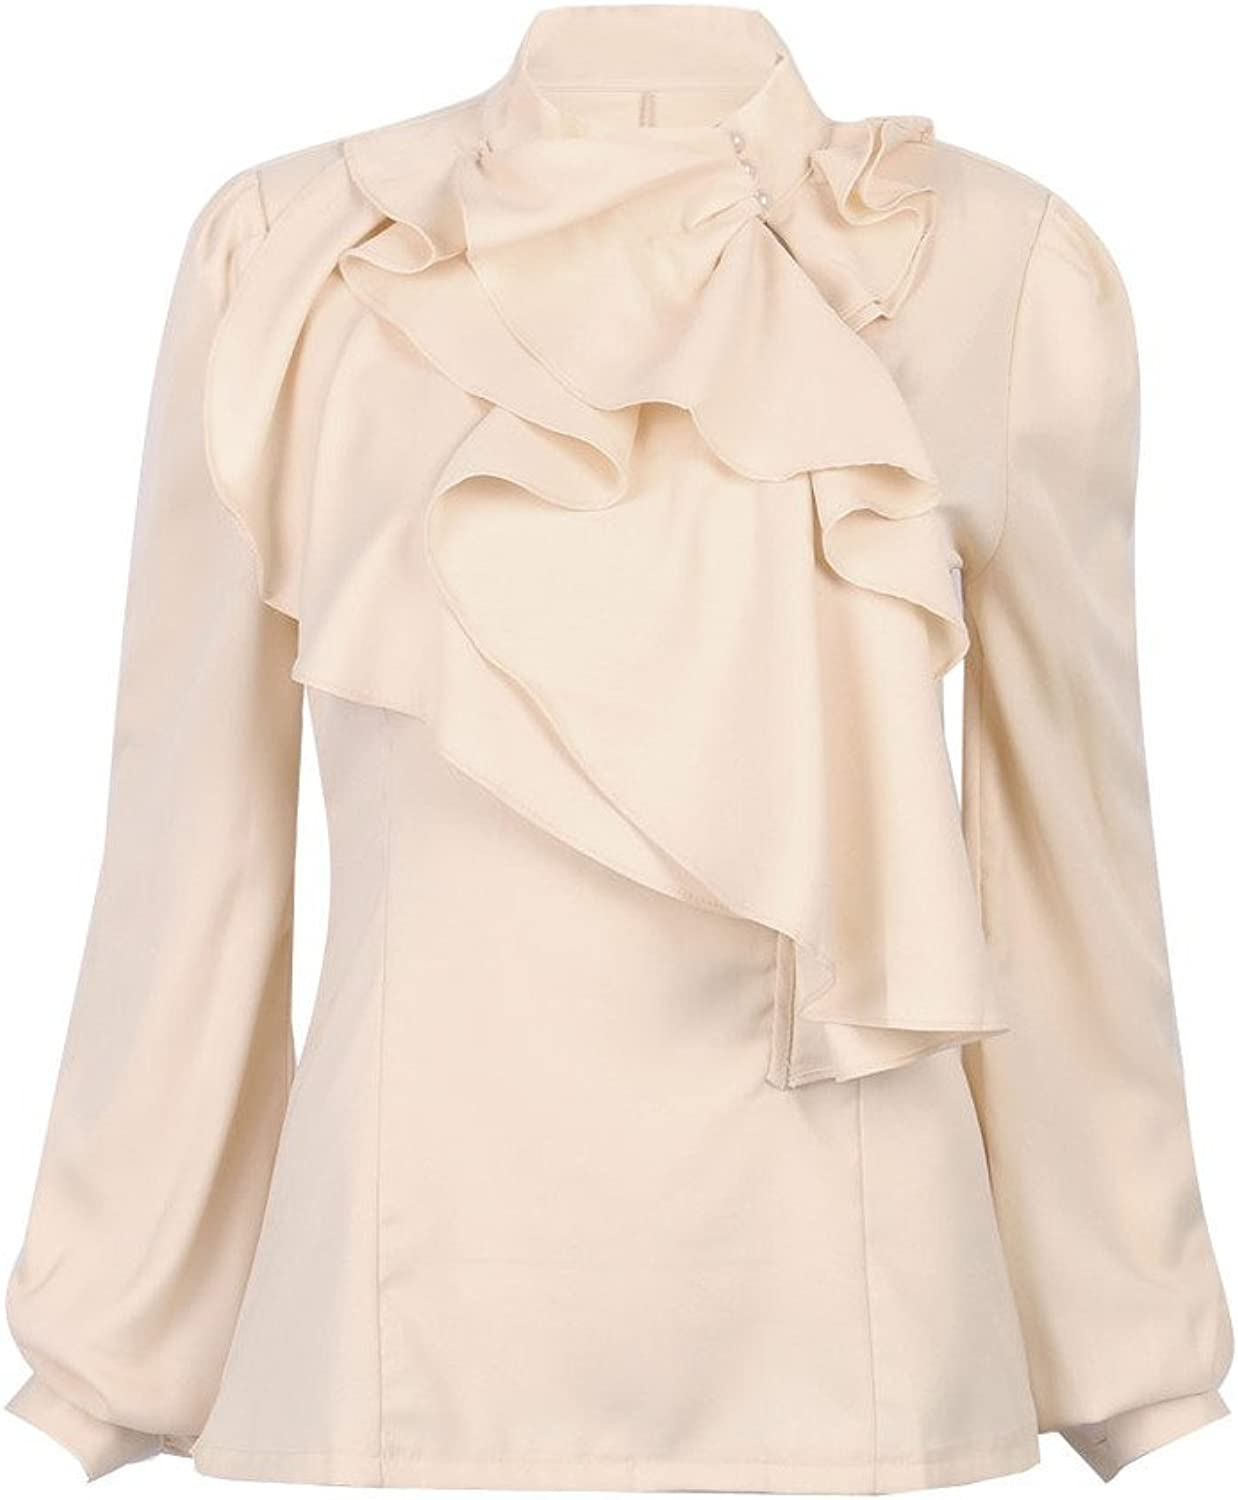 CHARLES RICHARDS CR Women's Beige High Neck Long Sleeve Ruffle Front Loose Blouse Top